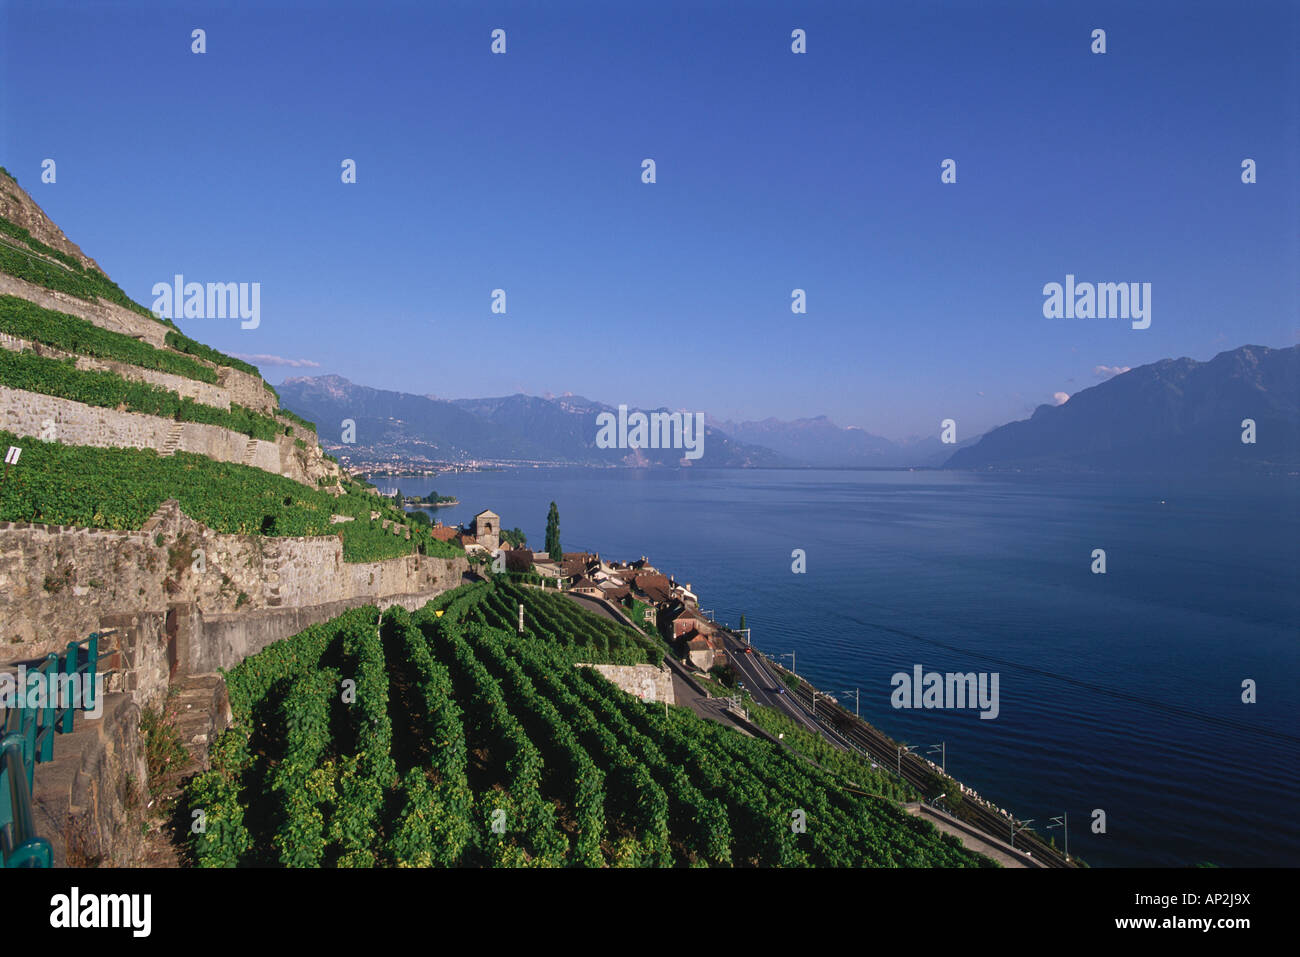 View of St. Saphorin and vineyards, Lake Geneva, Switzerland - Stock Image